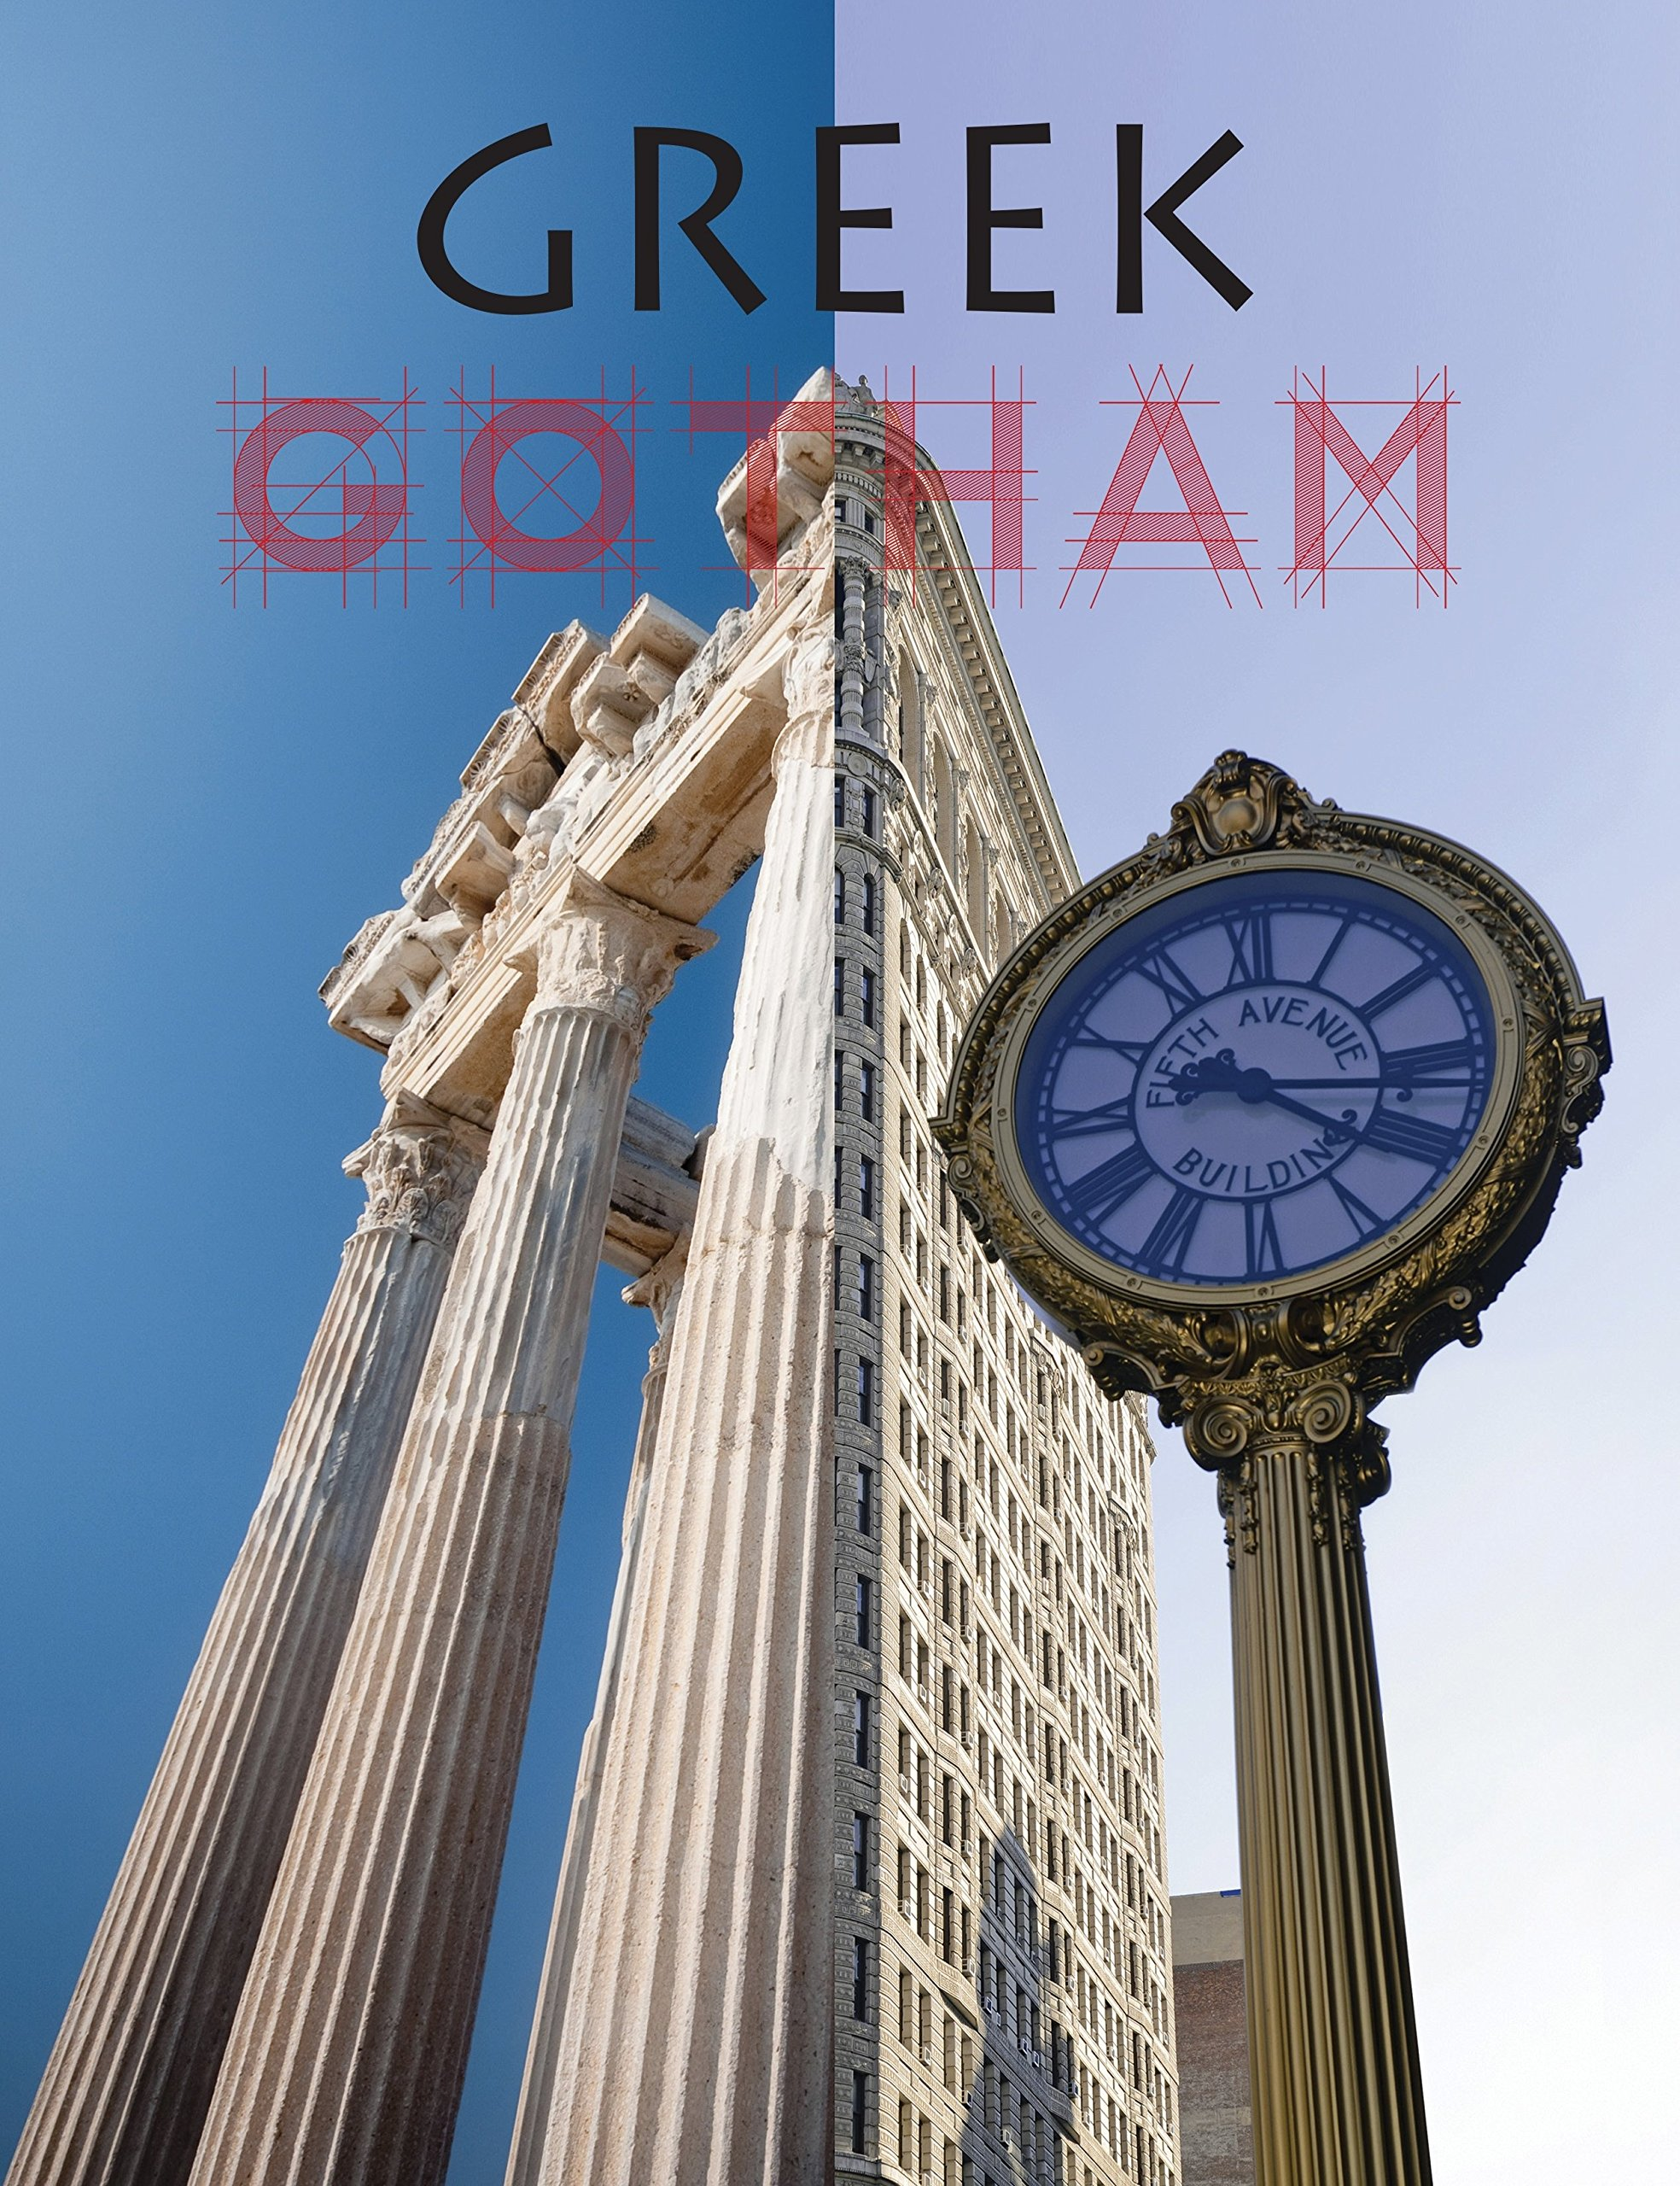 Greek Gotham  Book  Written and designed by art adviser, curator and creative designer, Maria Brito and with an introduction by art dealer, writer, art adviser and curator, Jeffrey Deitch,  Greek Gotham ; is a lush and colorful contemporary art catalogue that examines the legacy of Ancient and Classical Greek through the lens of a group of 16 contemporary artists based in New York City. Artists include: assume vivid astro focus, Nina Chanel Abney, Greg Bogin, Mira Dancy, Raul De Nieves, Michael Dotson, Sebastian Errazuriz, Nir Hod, Todd James, Misaki Kawai, KAWS, Robert Lazzarini, Austin Lee, Taylor McKimens, Matthew Palladino and Erik Parker. While making comparisons to Classical and Ancient Greece, the essays and artworks touch on many relevant issues present in New York today: LGBT, drugs, sexuality, social inequality, race, body image, technology and social media, among others. This catalogue is published in conjunction with Greek Gotham, a group show curated by Maria Brito at Dio Horia on the Island of Mykonos and comprised exclusively of New York-based artists.